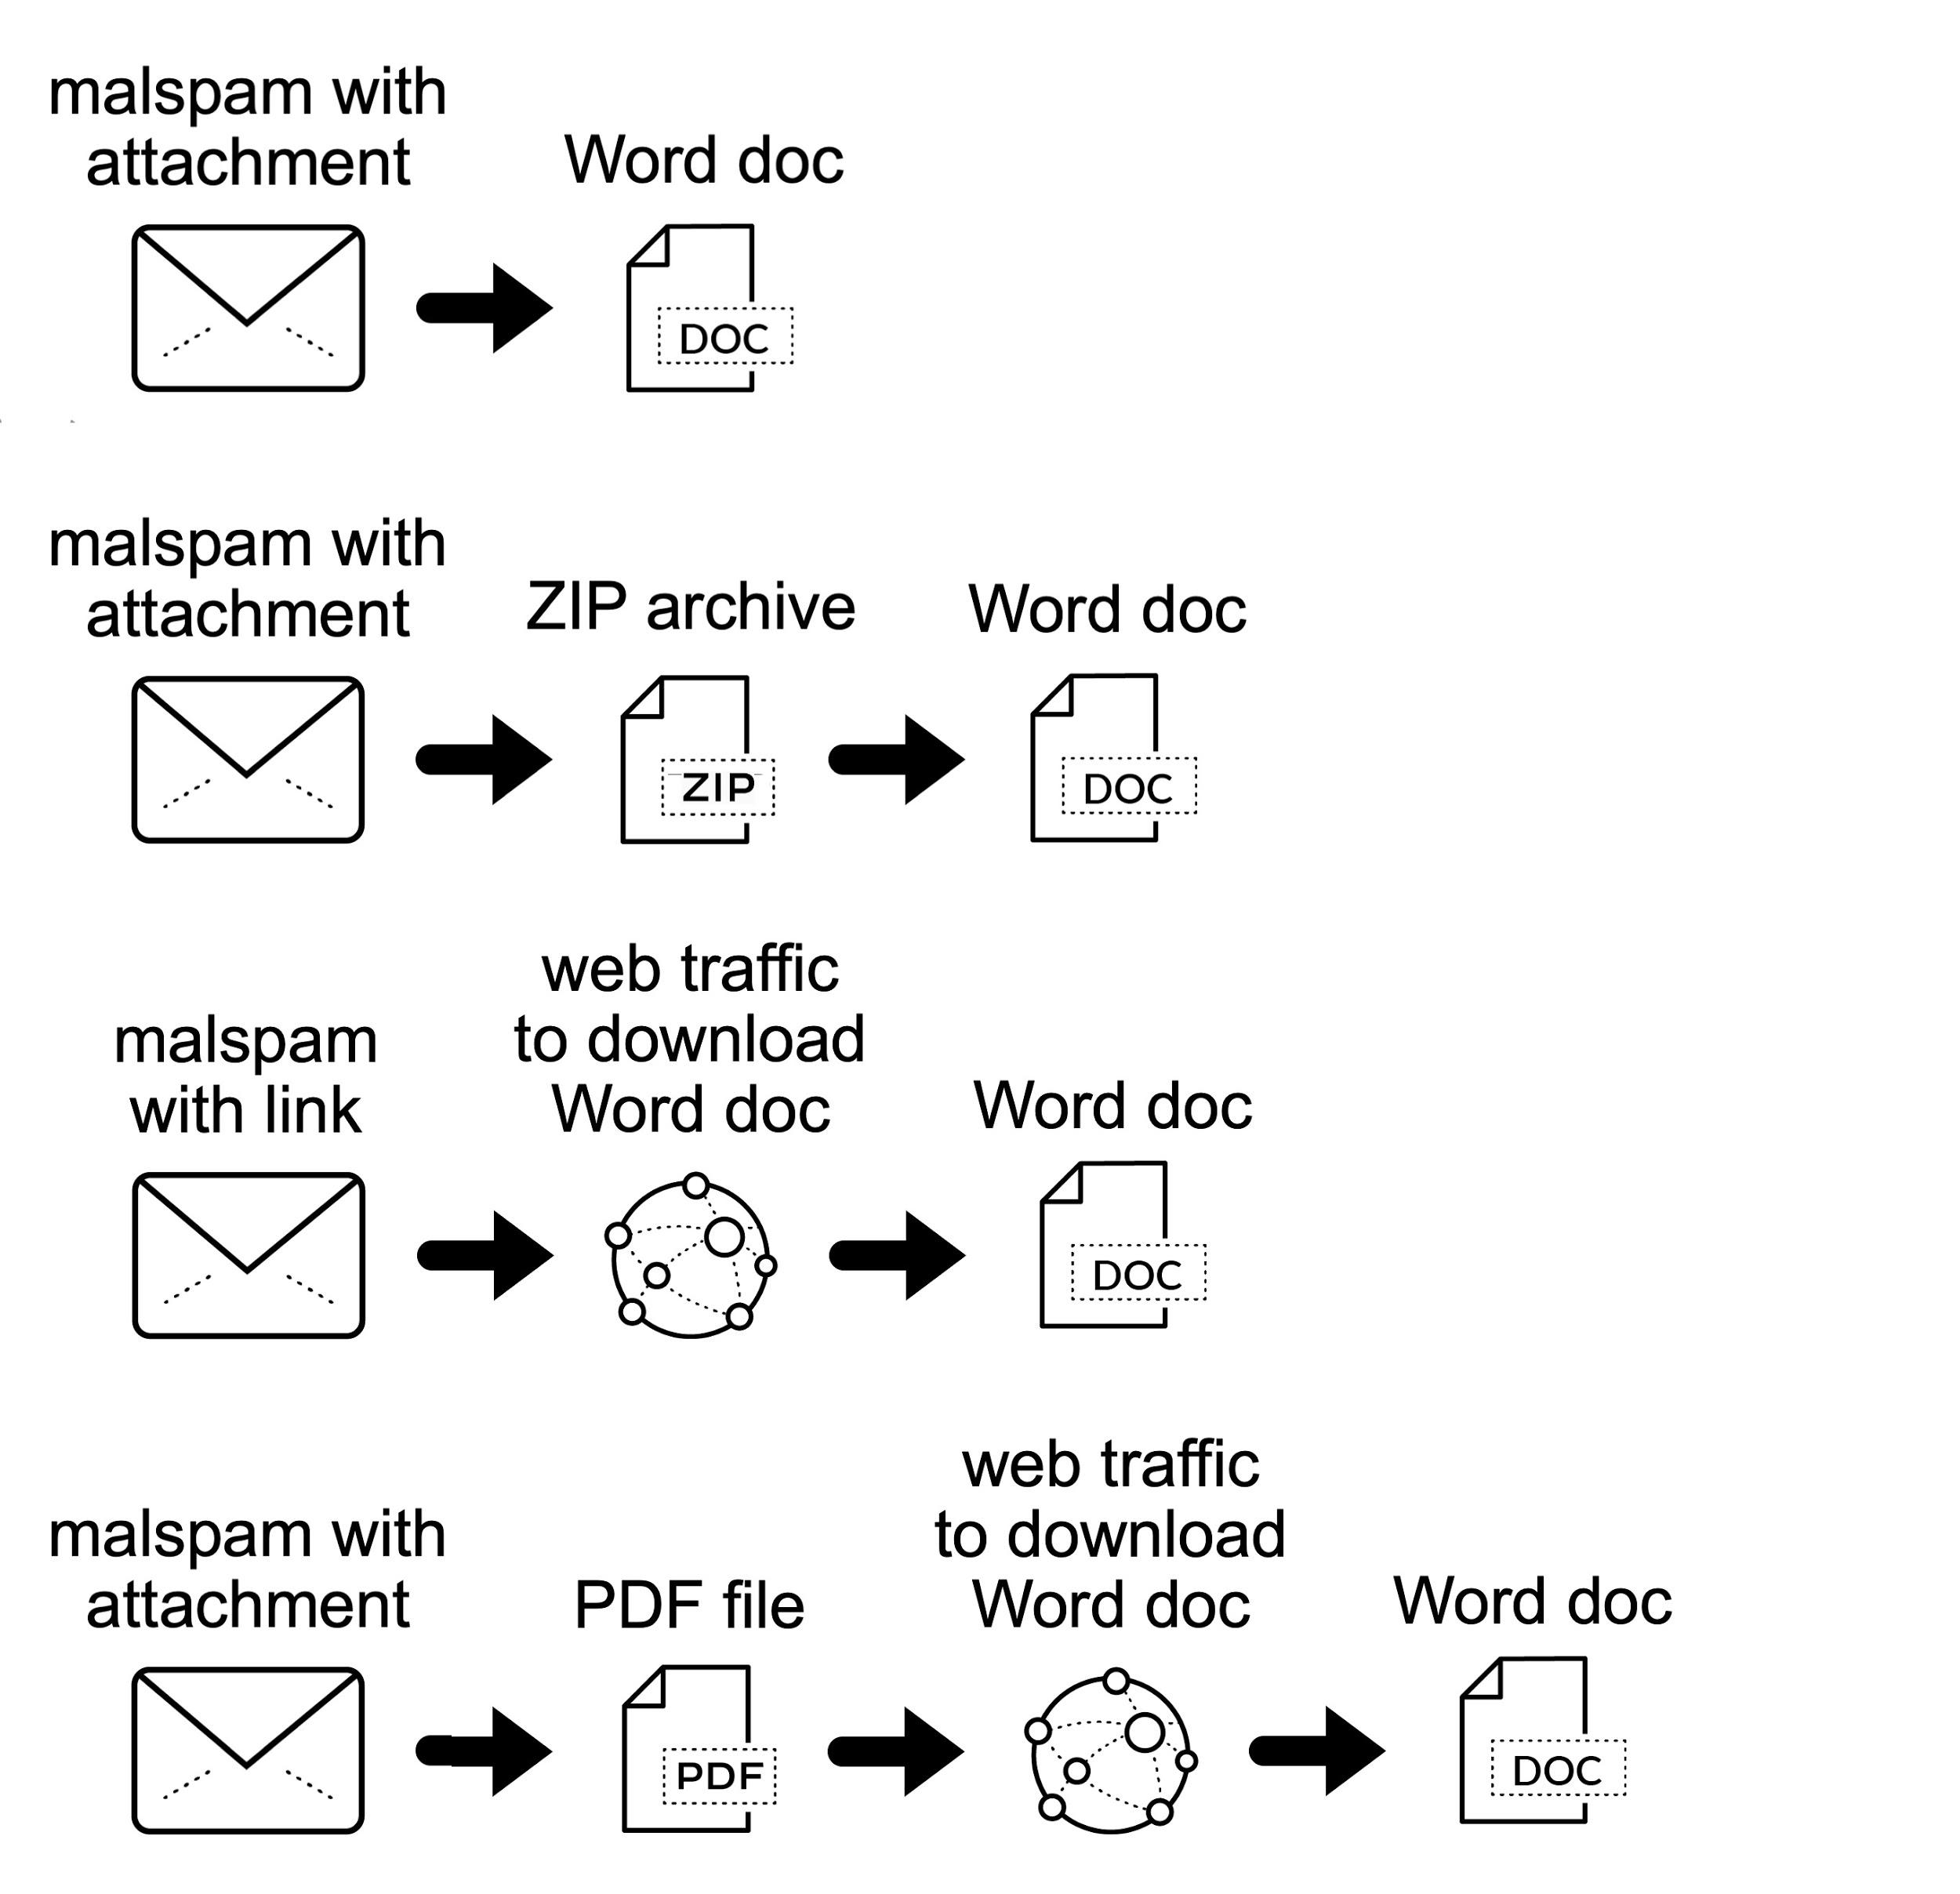 Distribution paths for Emotet Word document: 1) malspam with attachment to Word doc; 2) malspam with attachment to ZIP archive to Word doc; 3) malspam with link to web traffic to download Word doc to Word doc; 4) malspam with attachment to PDF file to web traffic to download Word doc to Word doc